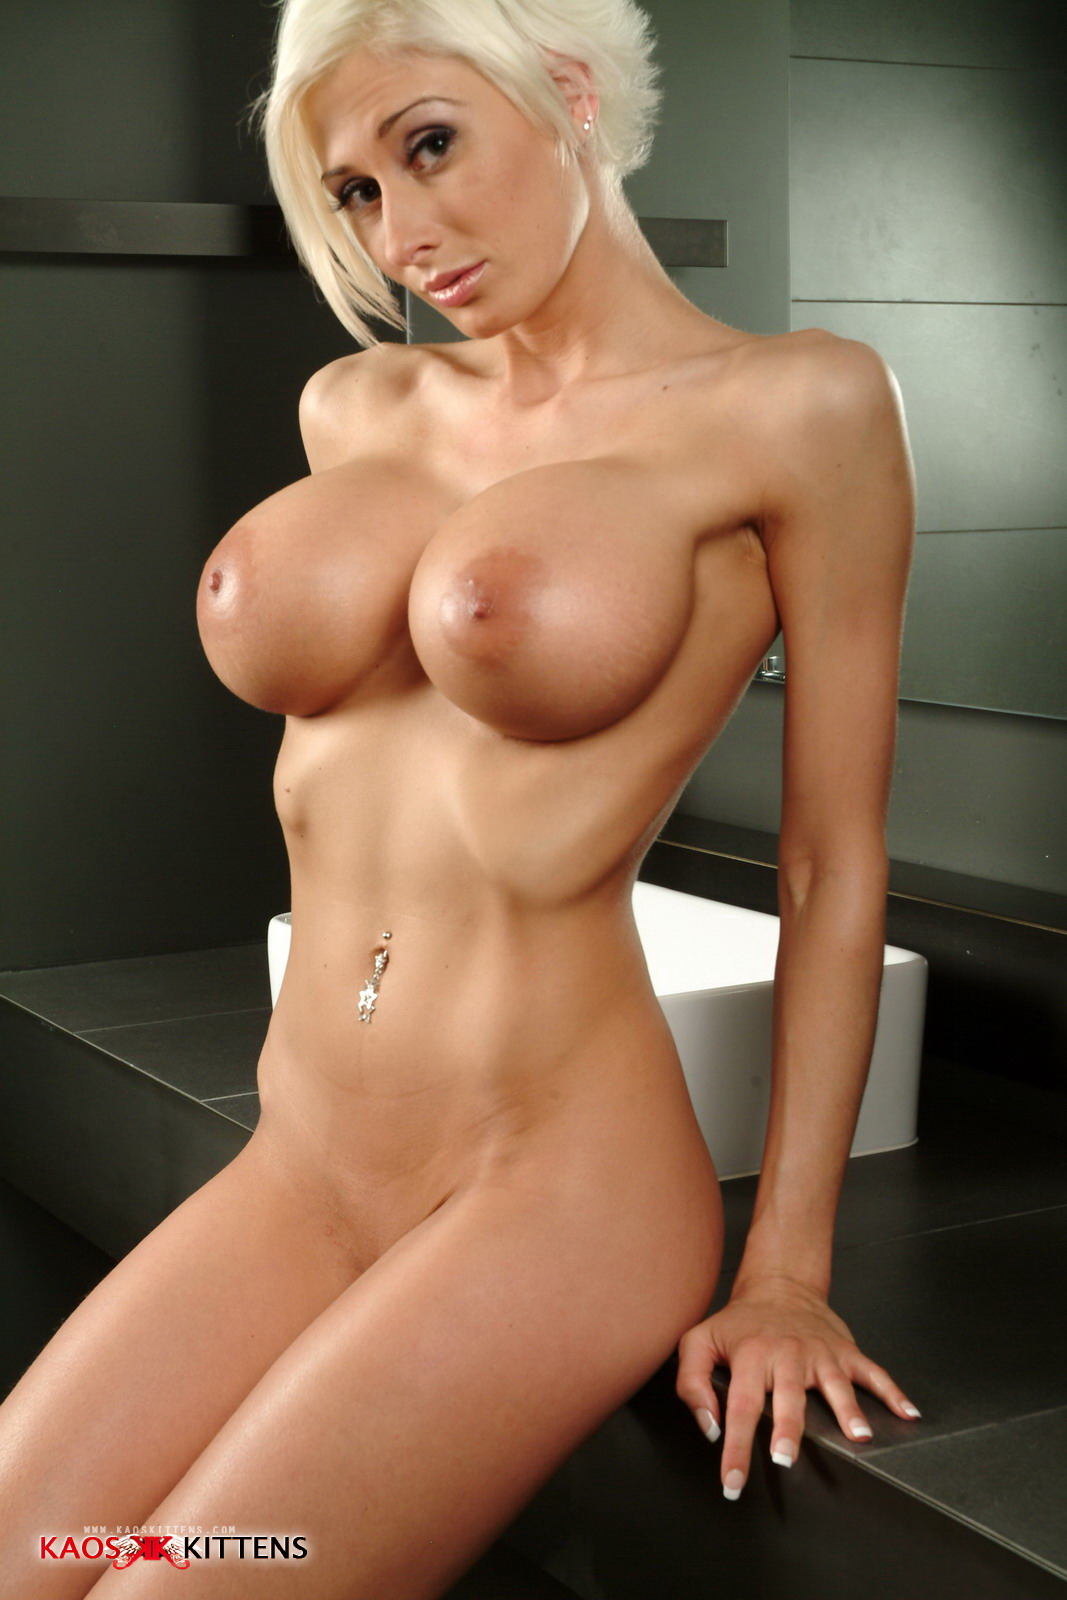 girls with short hair and big tits nude